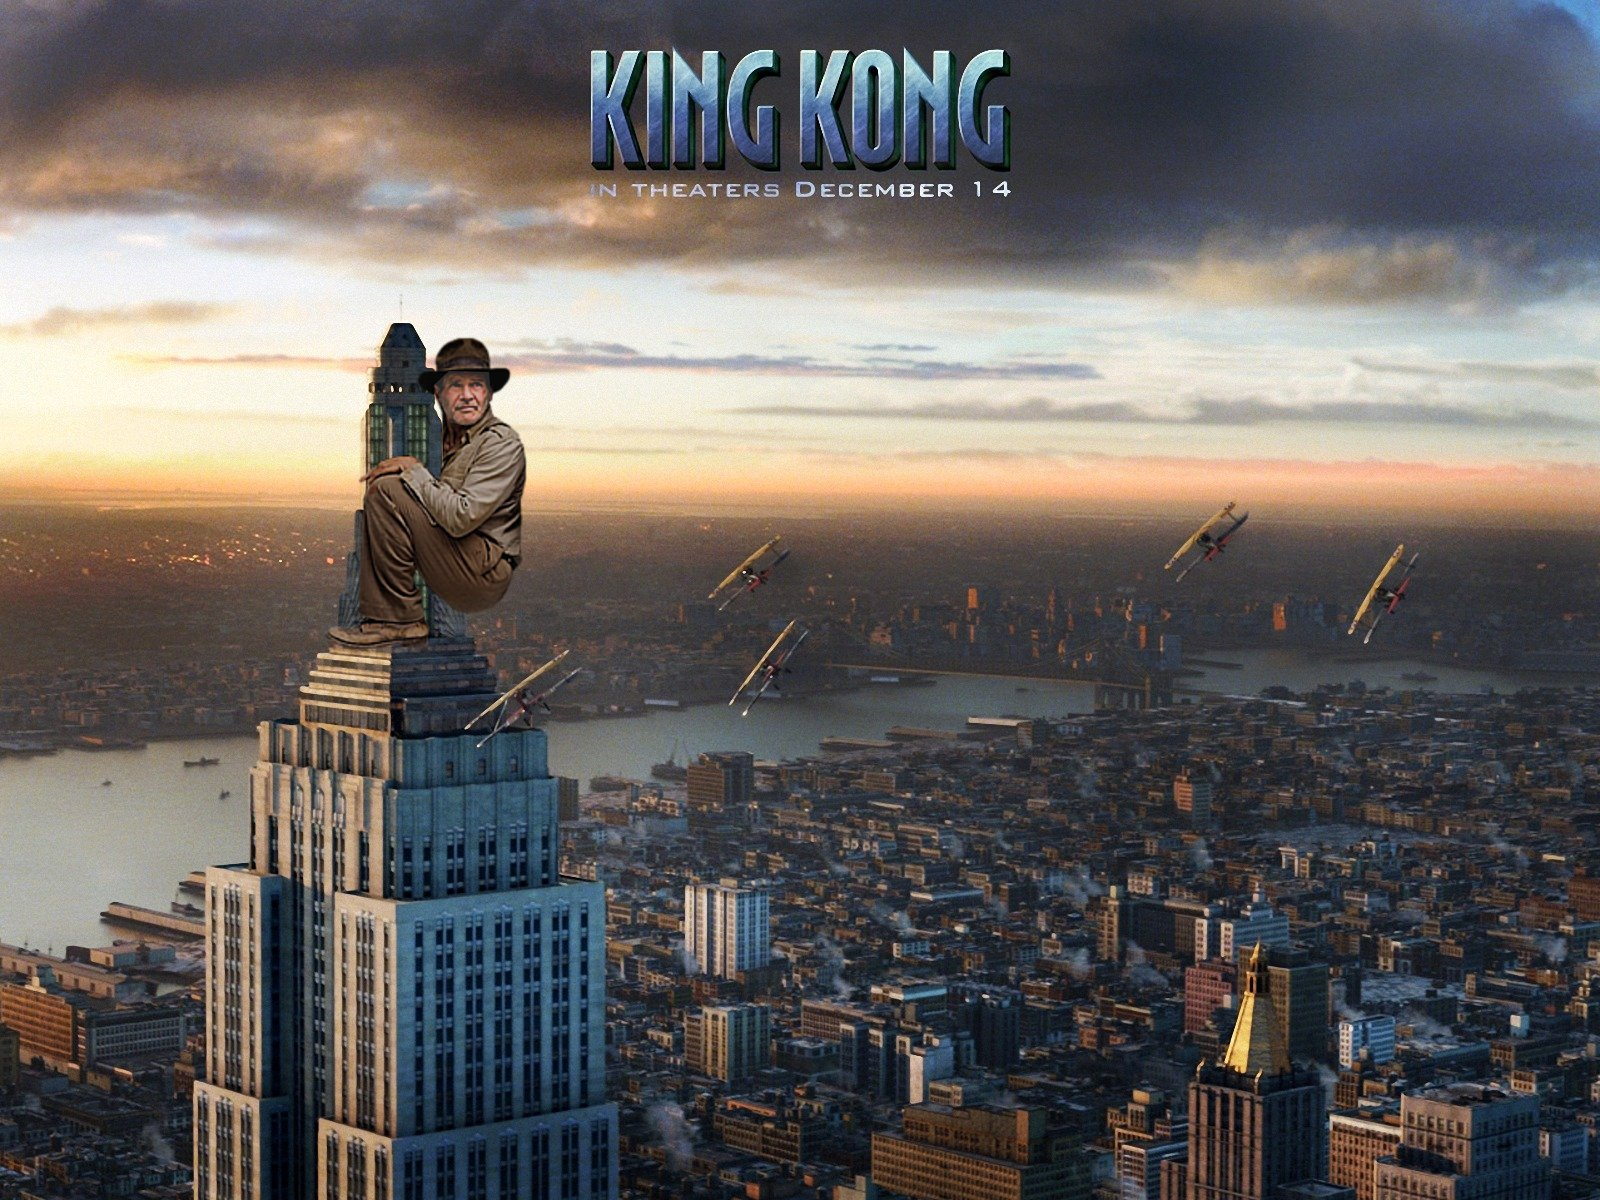 indiana jones fridge pose photoshop battle, indiana jones king kong